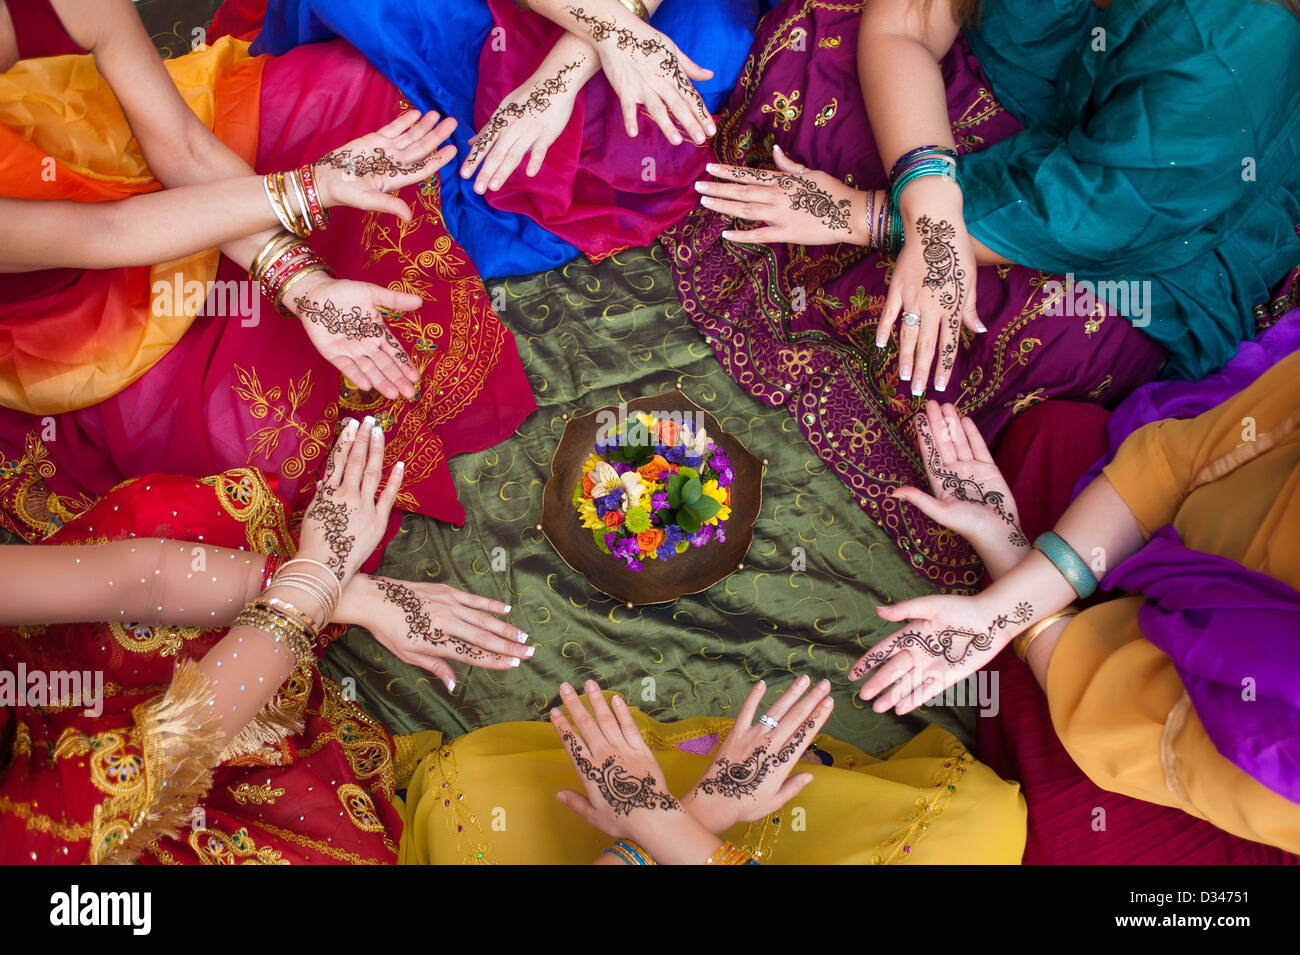 Henna Decorated Hands Arranged in a Circle - Stock Image